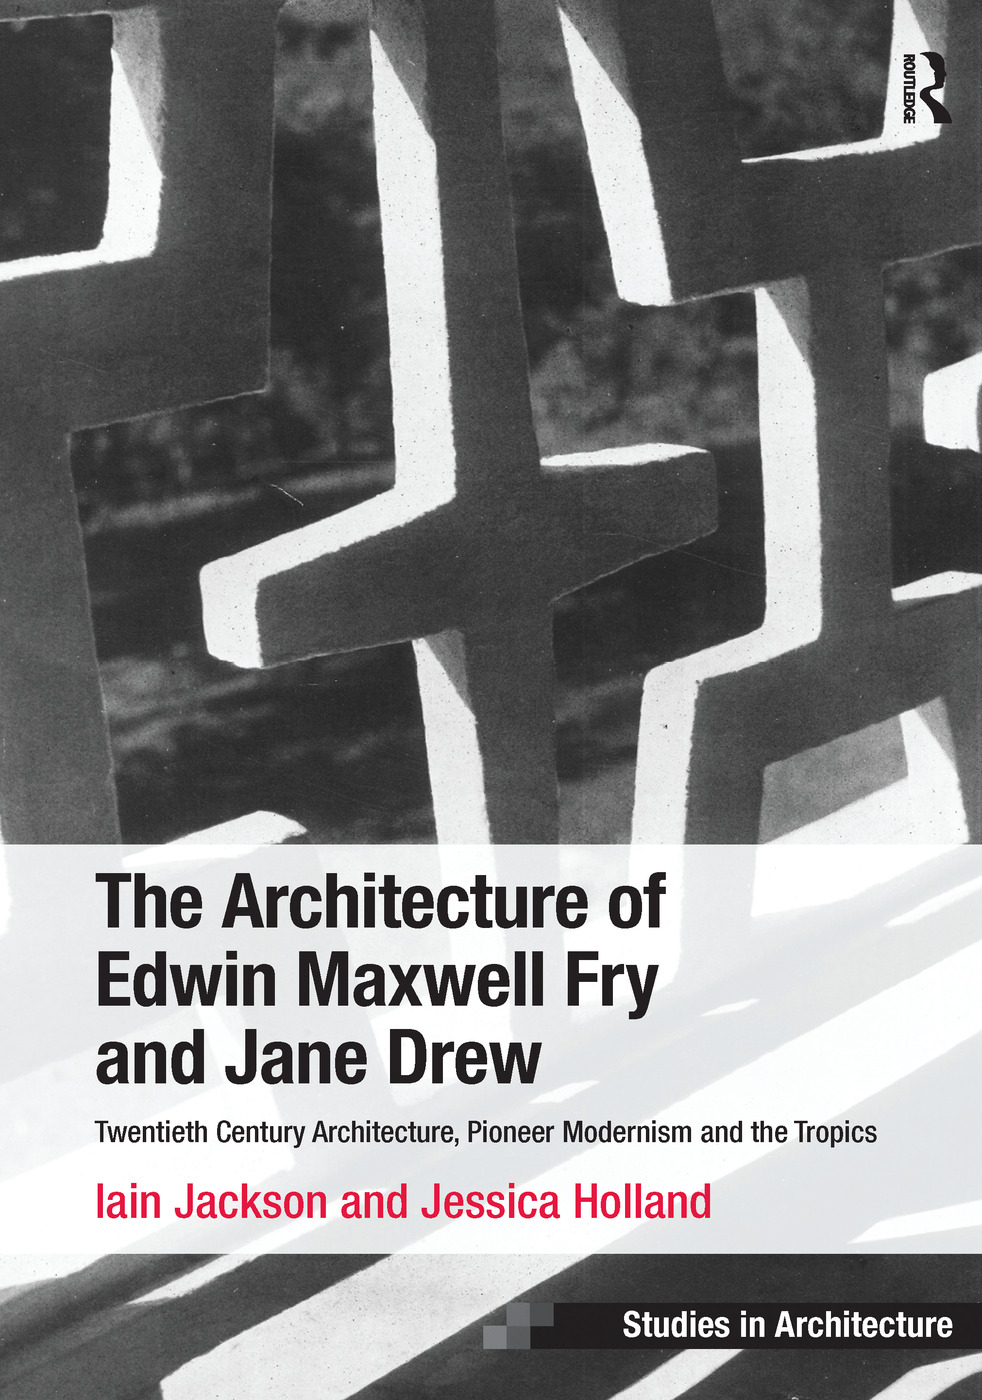 The Architecture of Edwin Maxwell Fry and Jane Drew: Twentieth Century Architecture, Pioneer Modernism and the Tropics book cover